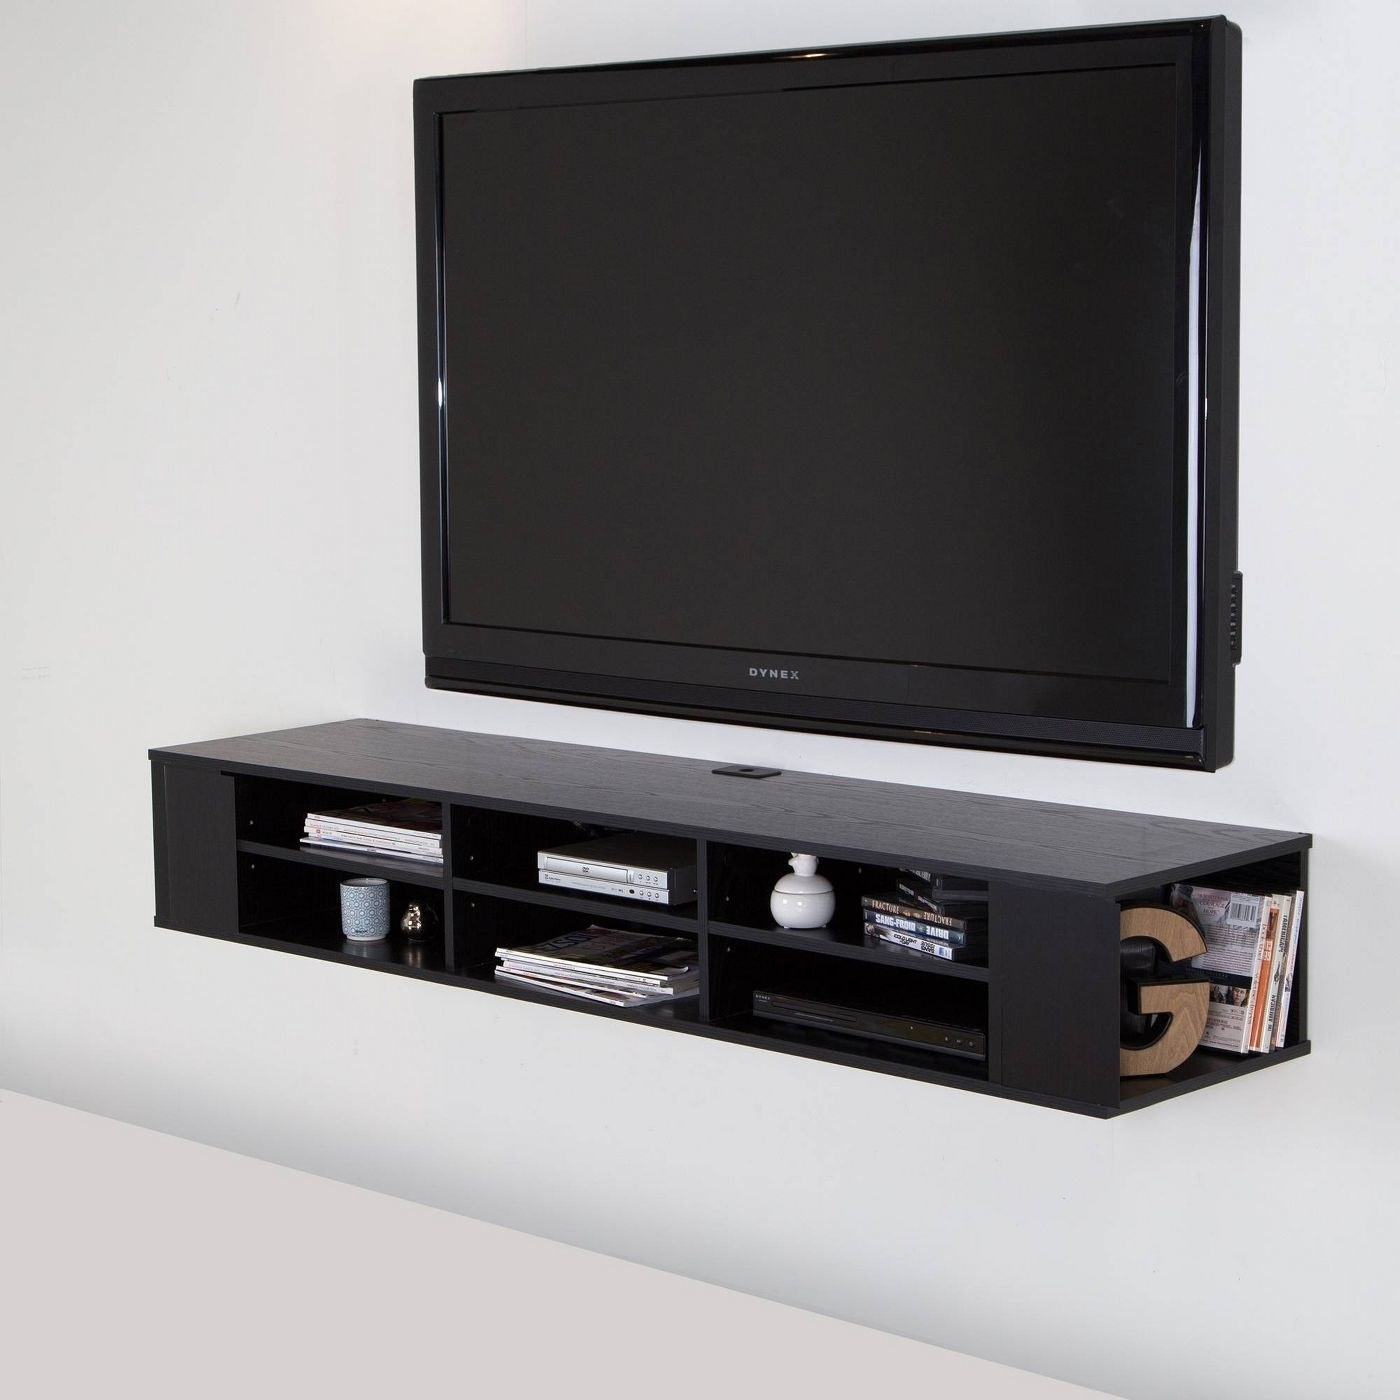 A floating TV stand in a home